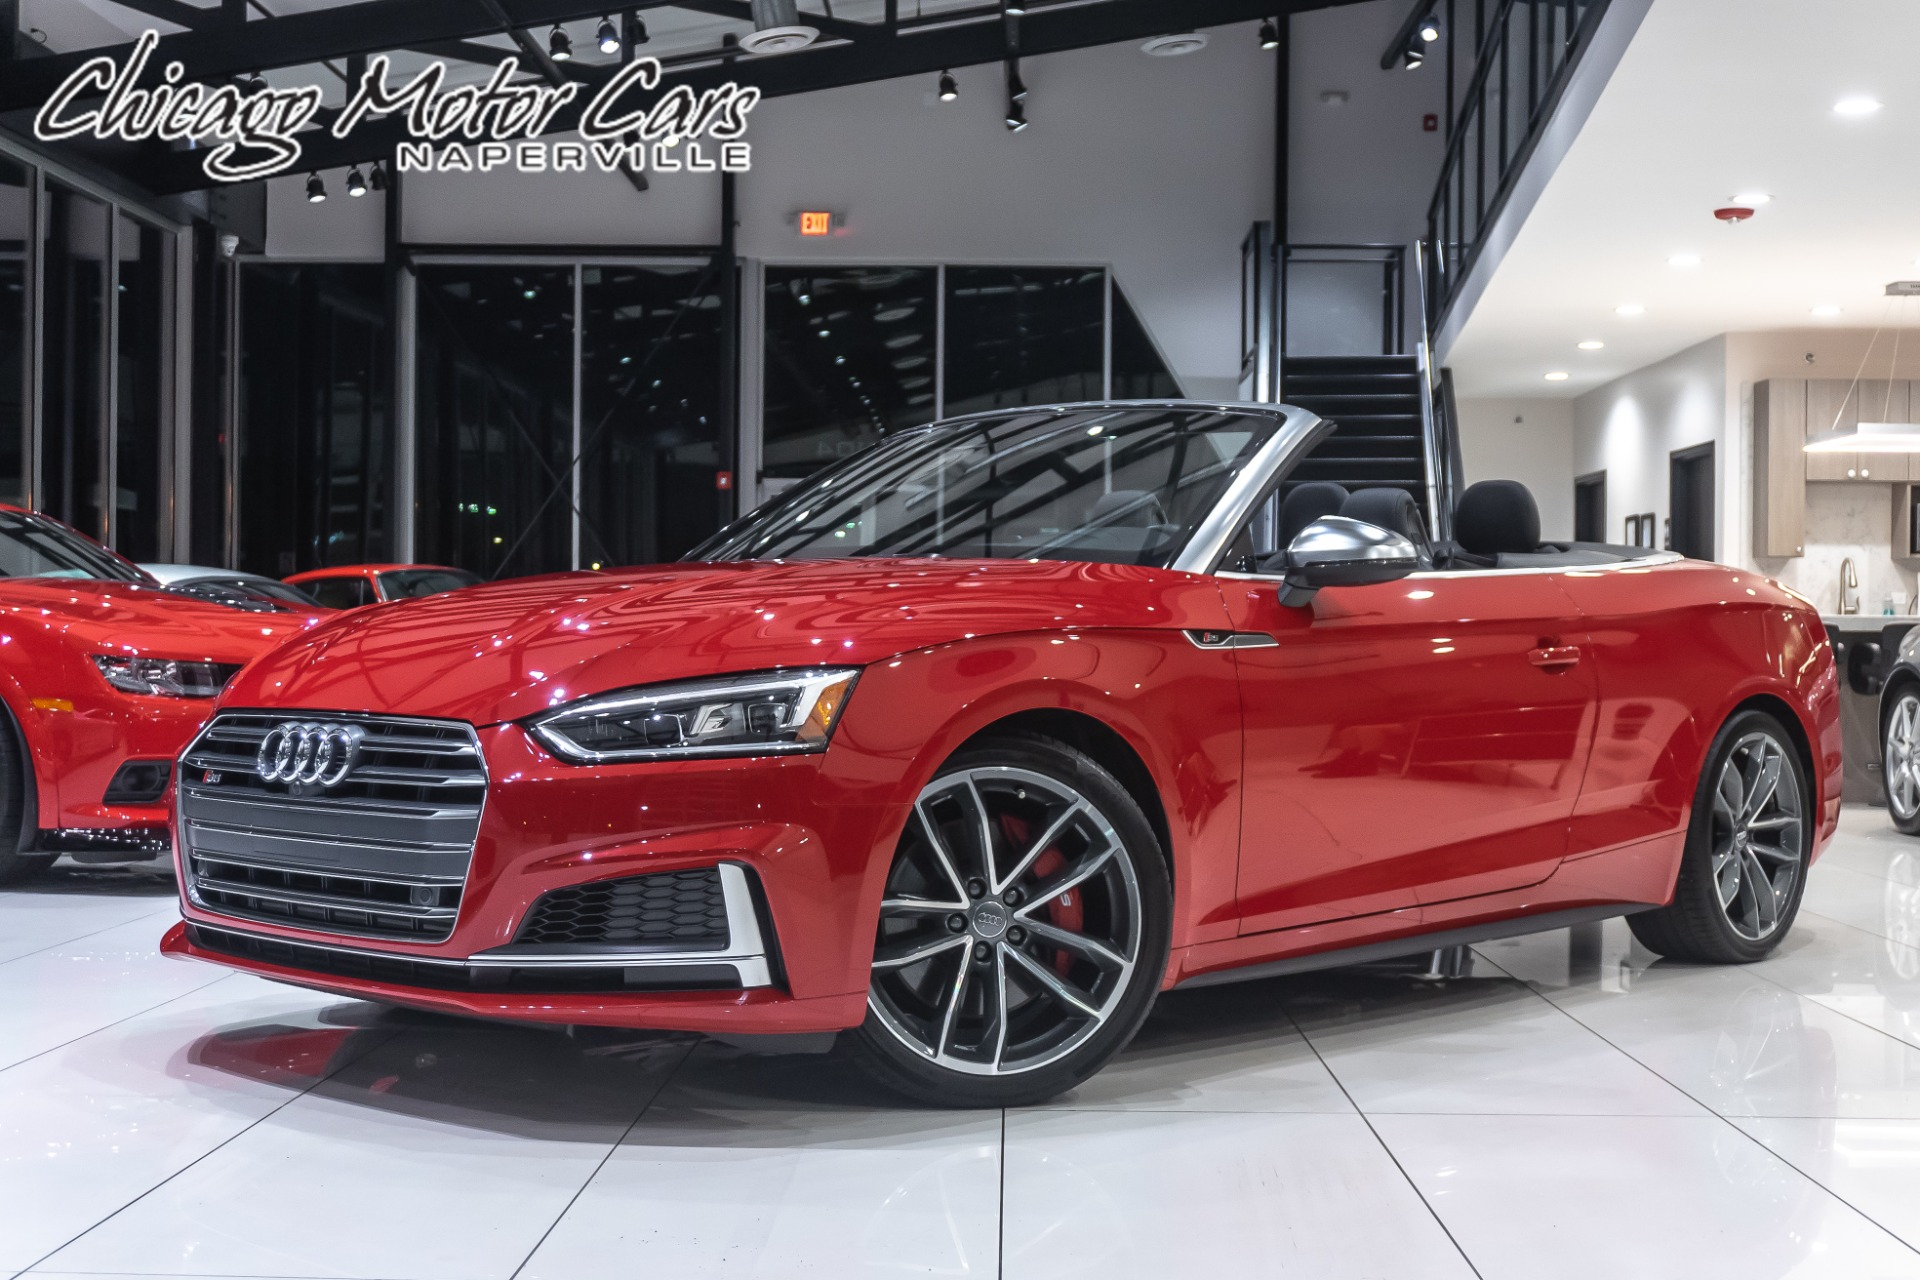 Used 2018 Audi S5 3 0t Quattro Prestige Cabriolet Convertible Msrp 72k Only 6k Miles For Sale Special Pricing Chicago Motor Cars Stock 16264